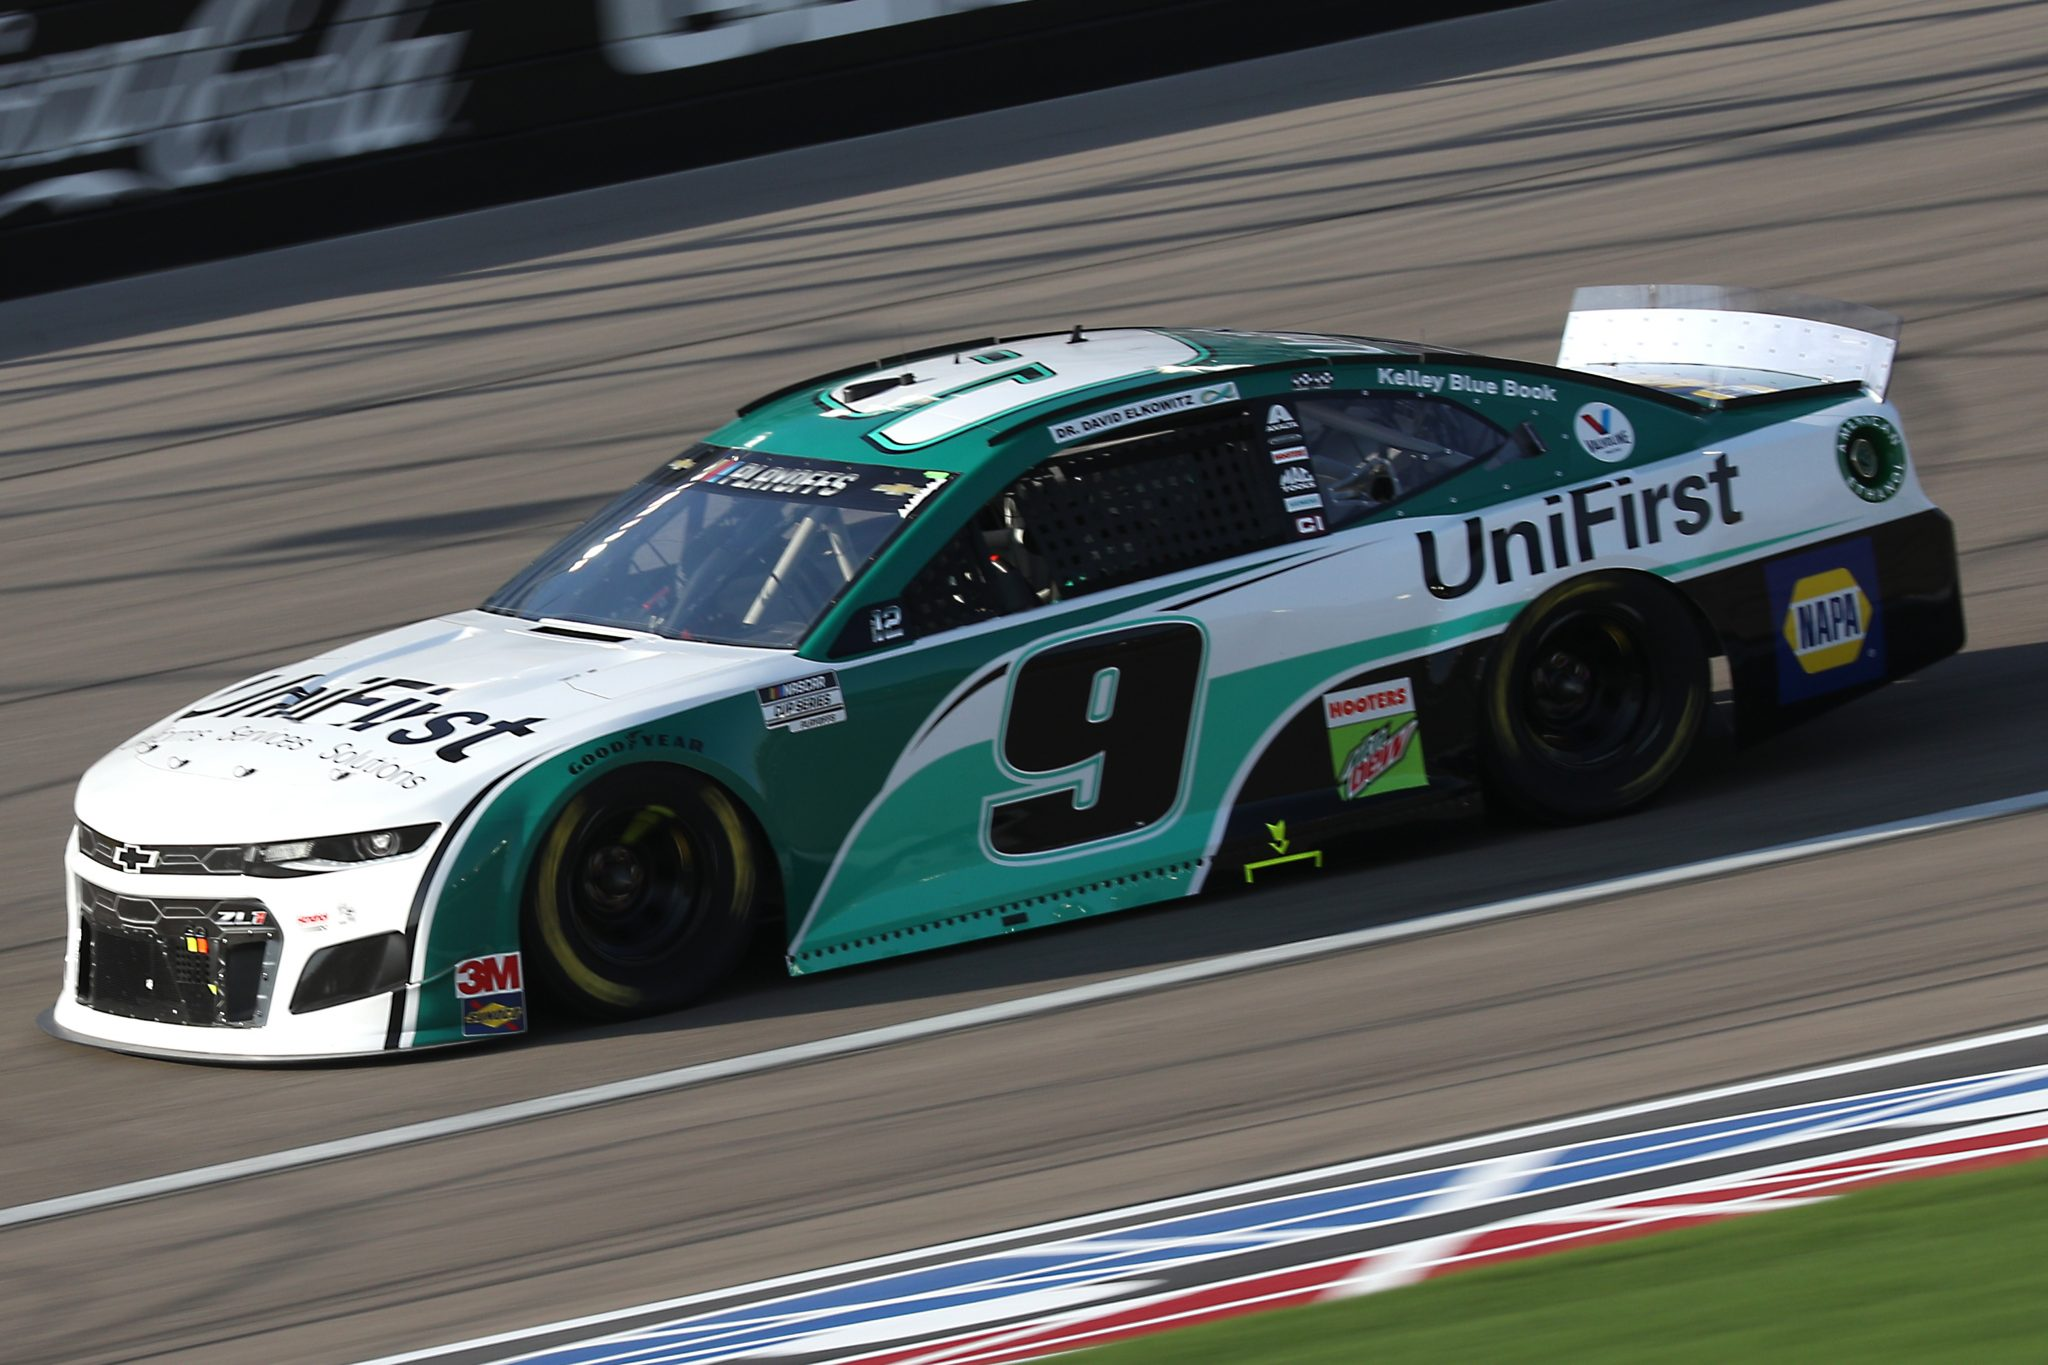 LAS VEGAS, NEVADA - SEPTEMBER 27: Chase Elliott, driver of the #9 Unifirst Chevrolet, drives during the NASCAR Cup Series South Point 400 at Las Vegas Motor Speedway on September 27, 2020 in Las Vegas, Nevada. (Photo by Chris Graythen/Getty Images) | Getty Images